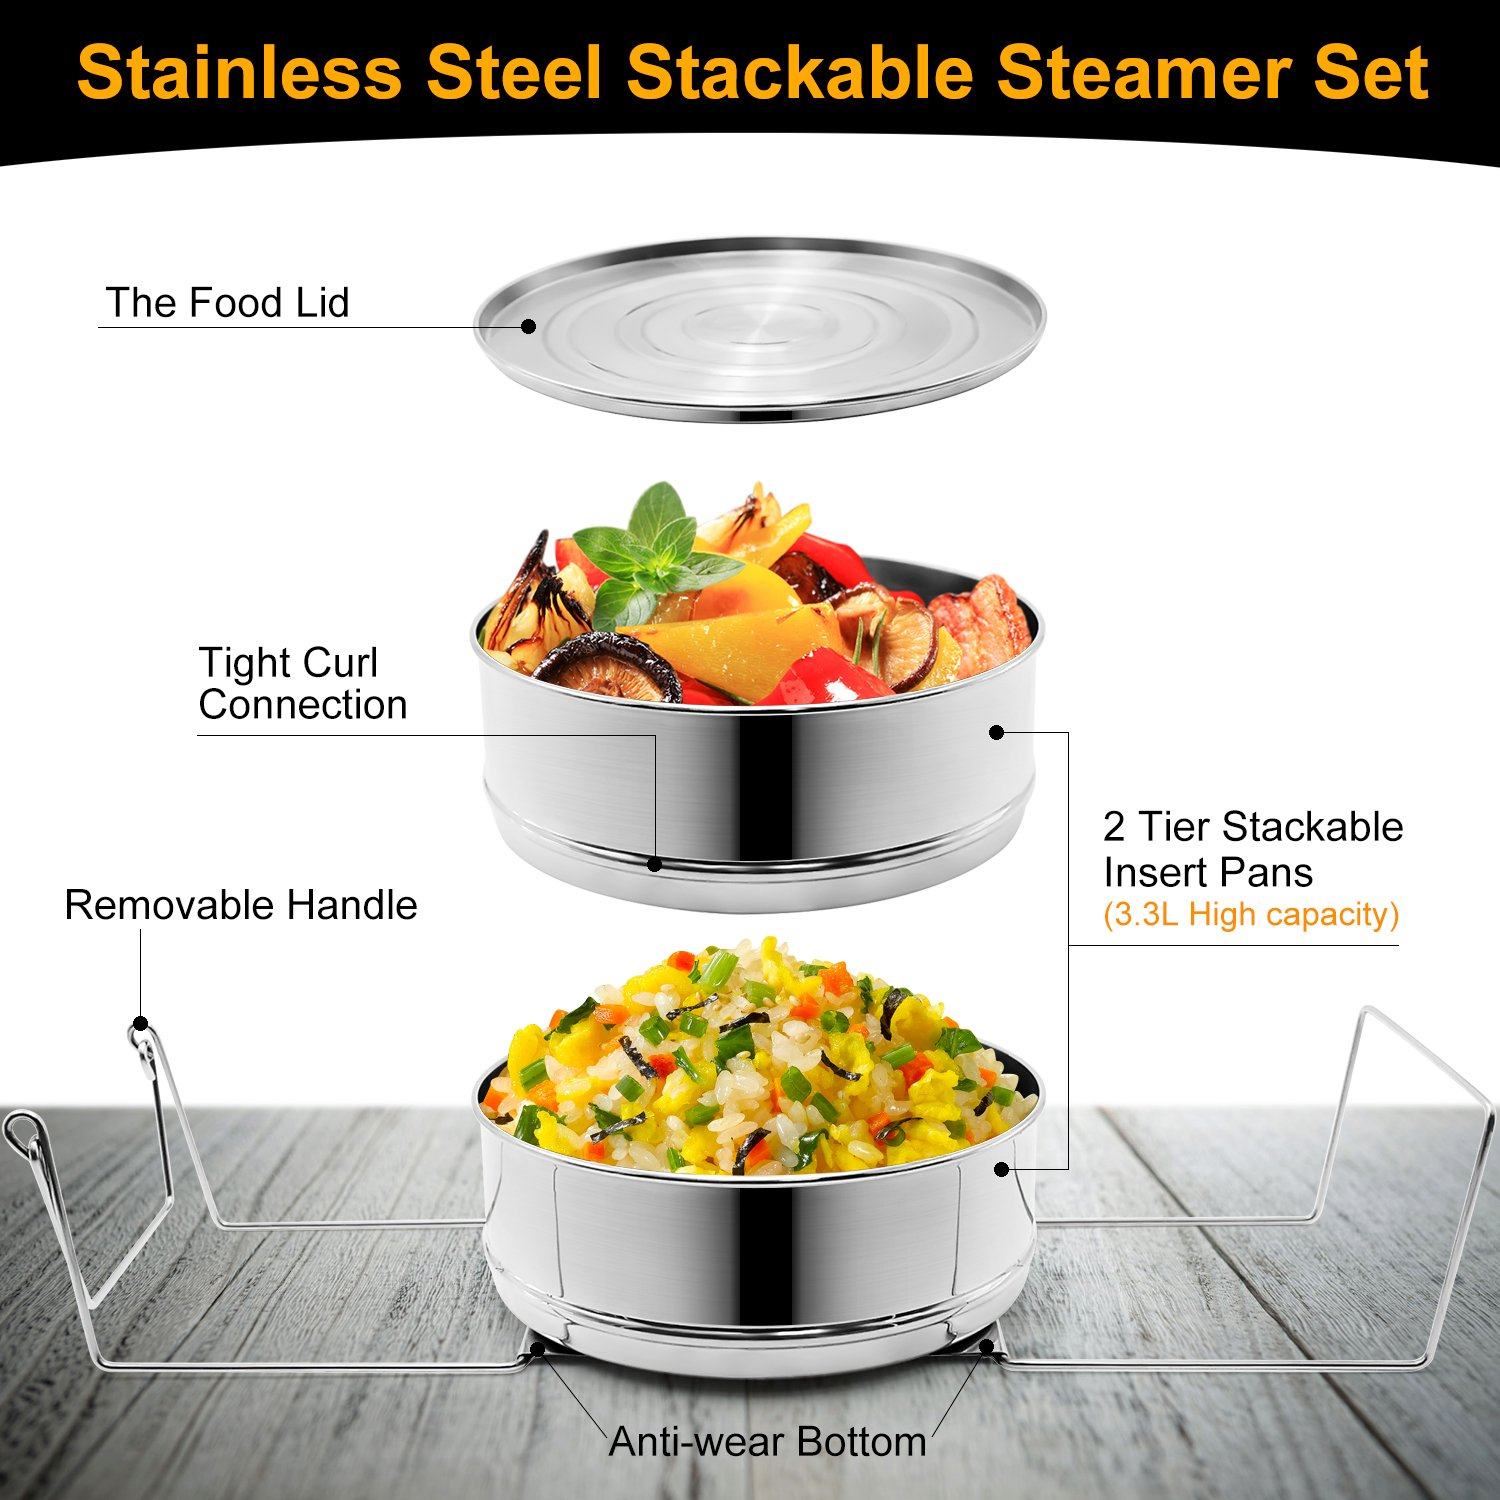 Stackable Steamer Insert Pans, Stainless Steel Insert Steamer for 6/8 Quart Instant Pot Pressure Cooker Baking Lasagna Pans Pot in Pot Accessories Cook 2 foods at Once by youermei (Image #2)